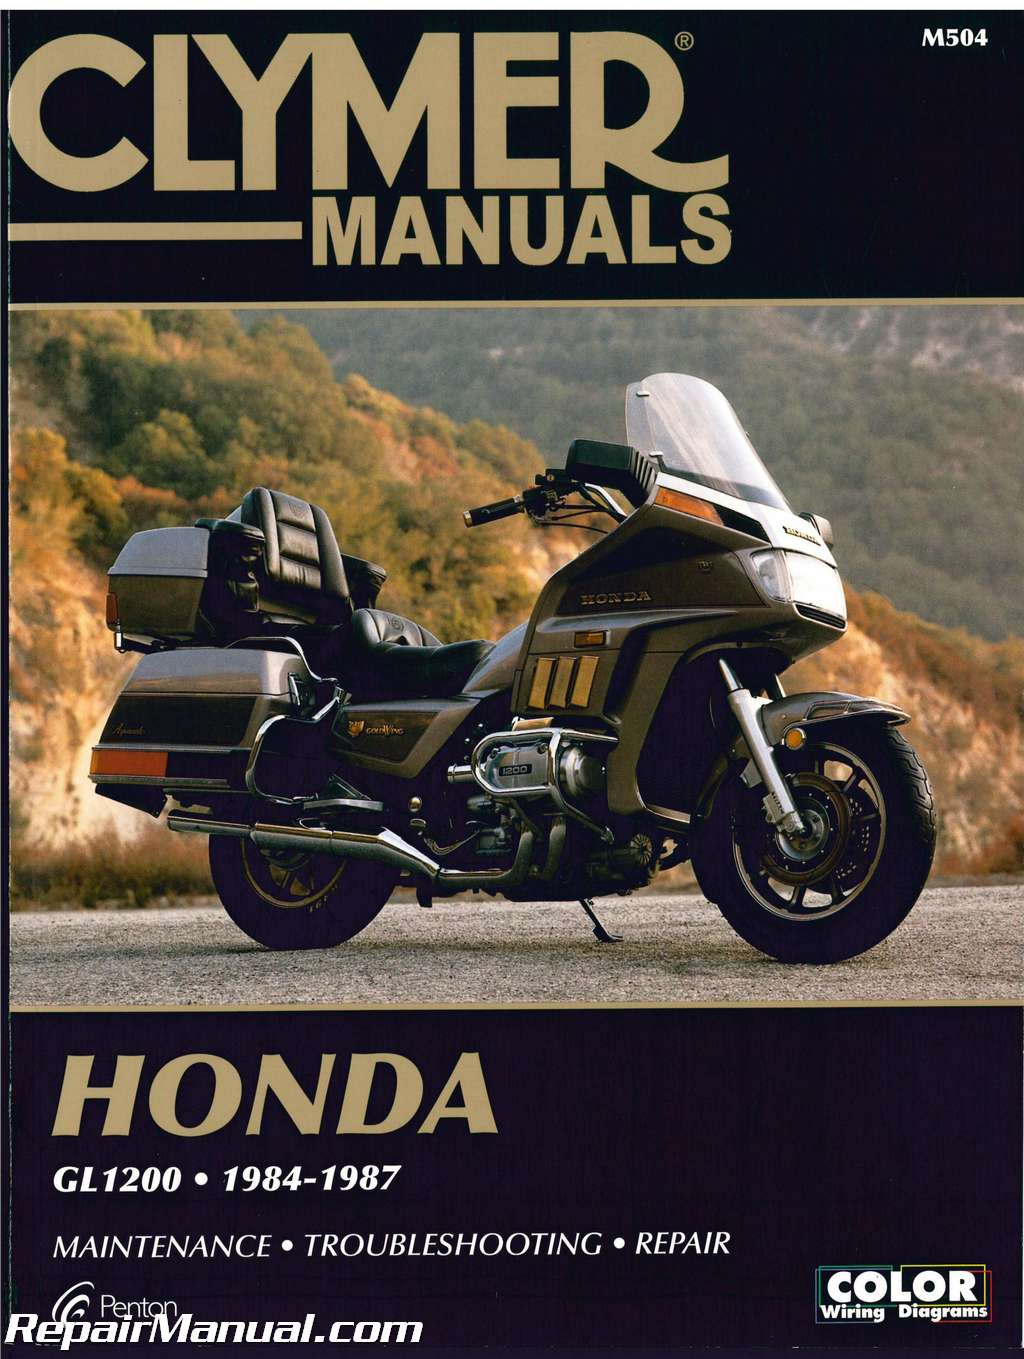 Honda Gl1200 Gold Wing Motorcycle Repair Manual 1984 1987 Clymer Schematic  Honda Goldwing Motorcycle 1984 Goldwing Wiring Diagram